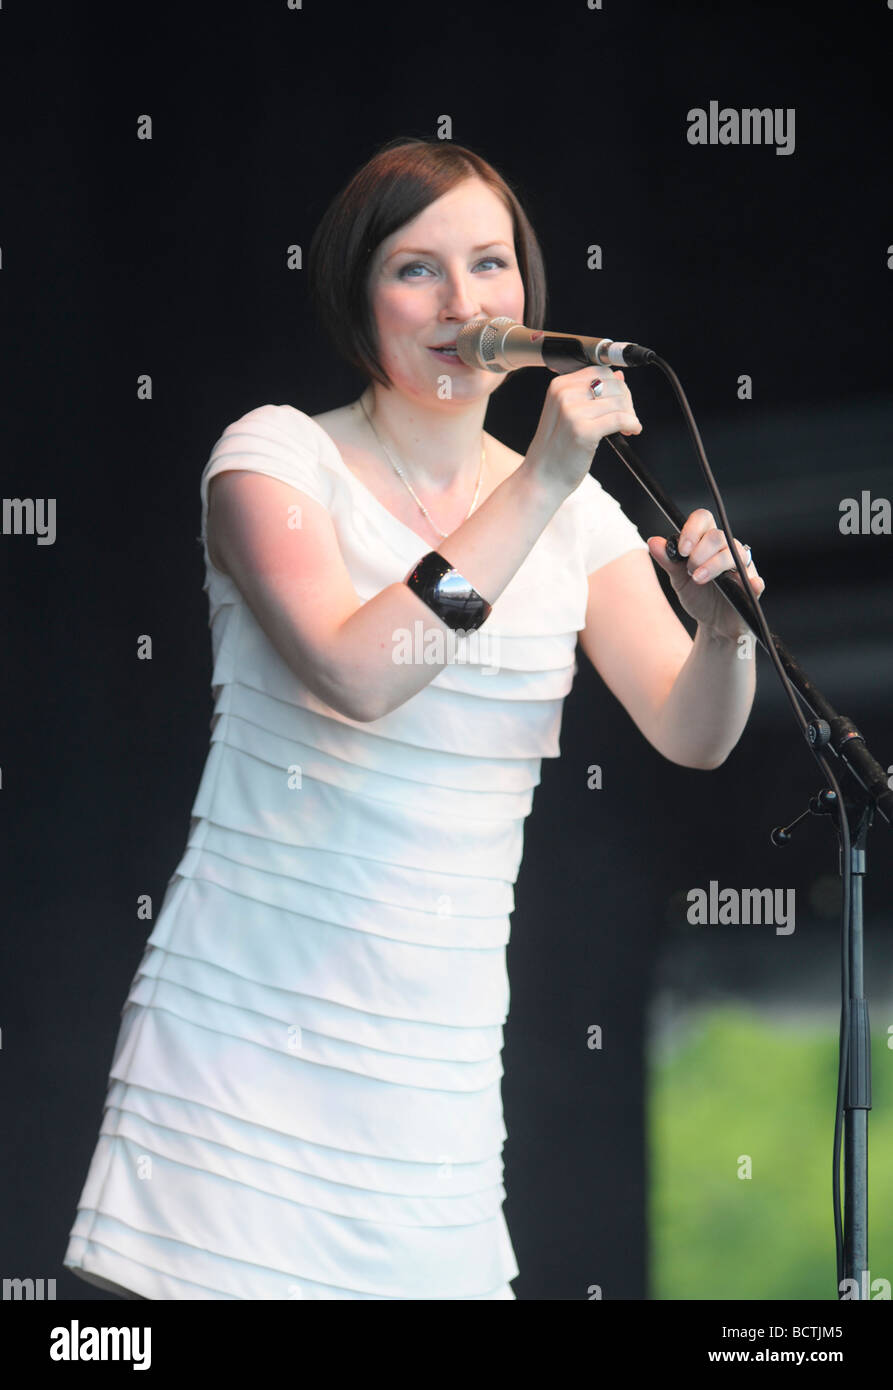 Scottish Folk Singer Julie Fowlis performs on stage at The Gathering 2009 in Holyrood Park, Edinburgh, for Homecoming - Stock Image